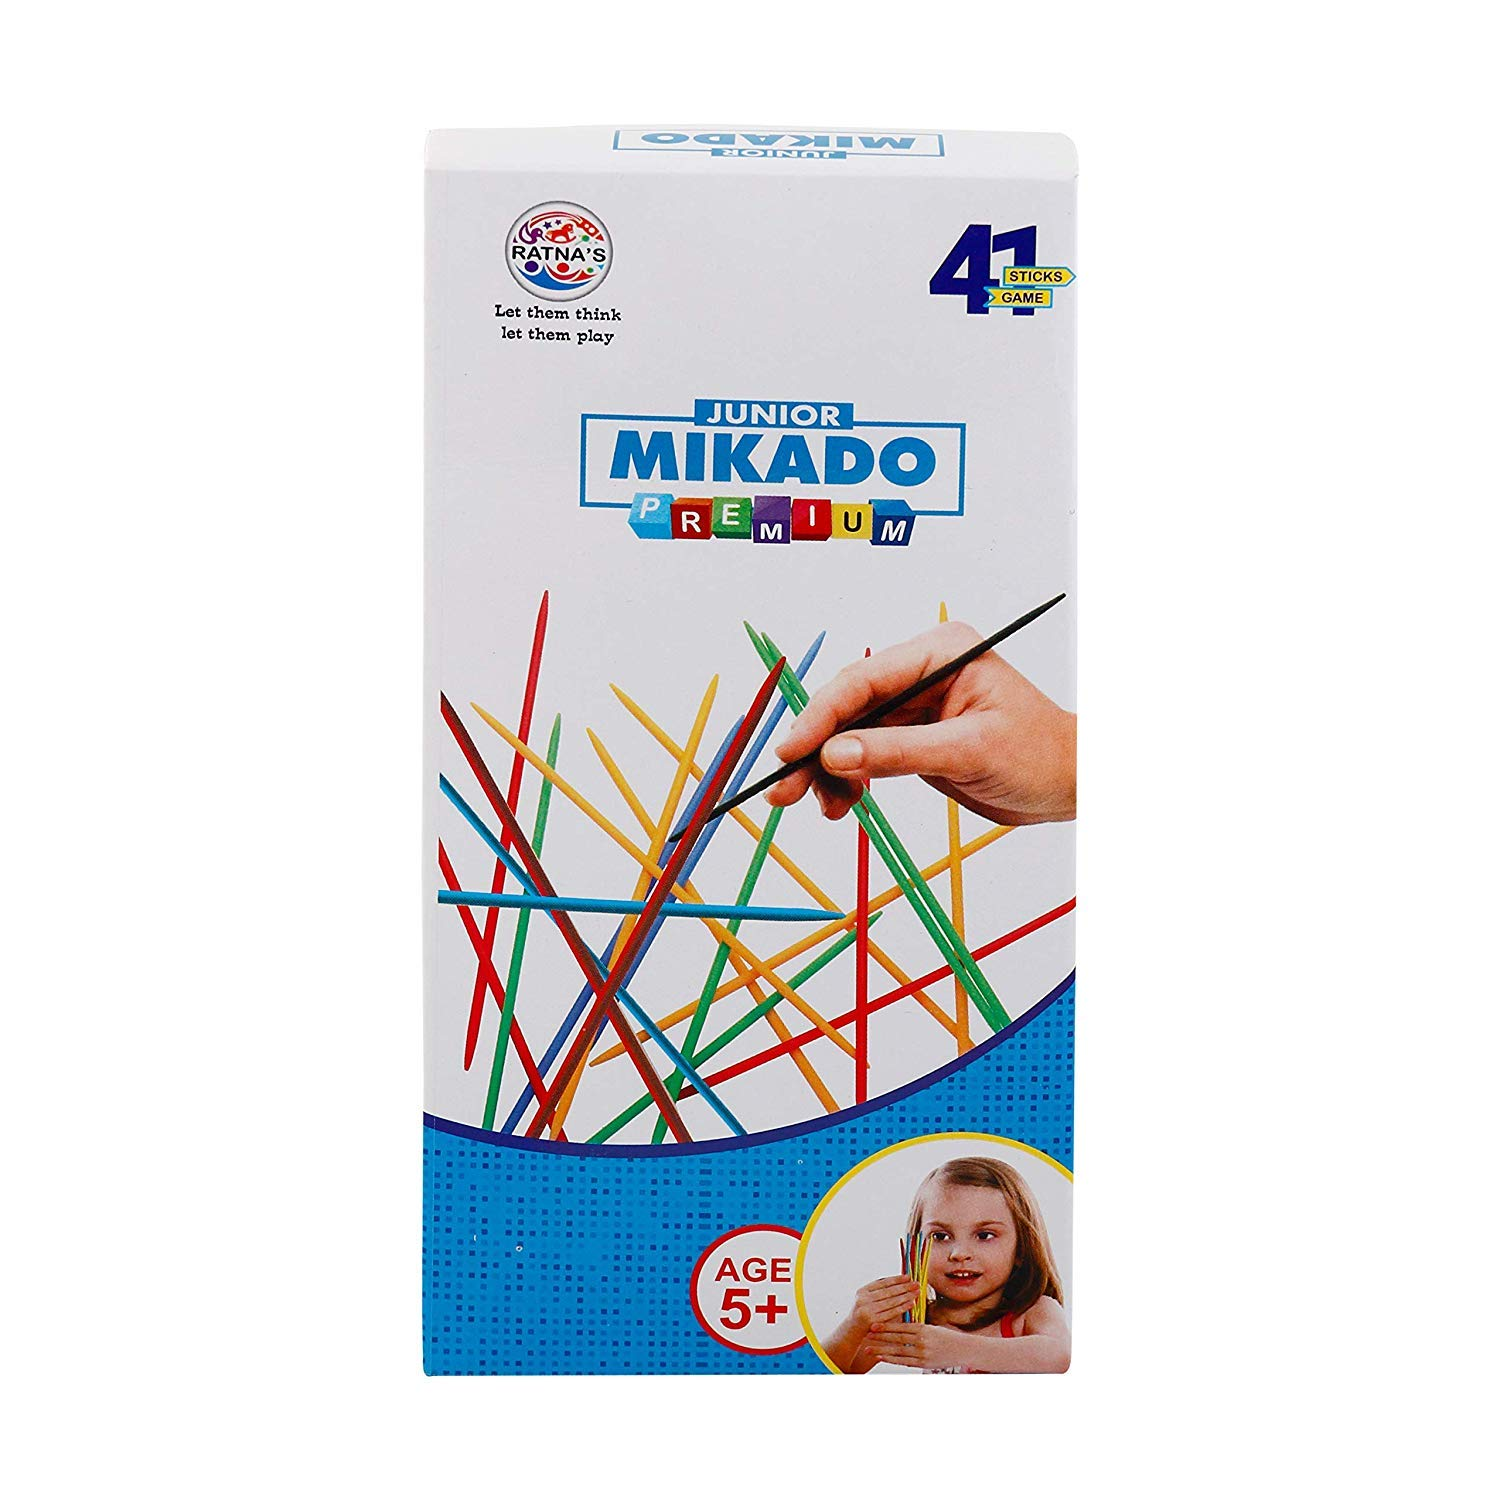 Junior Mikado Premium